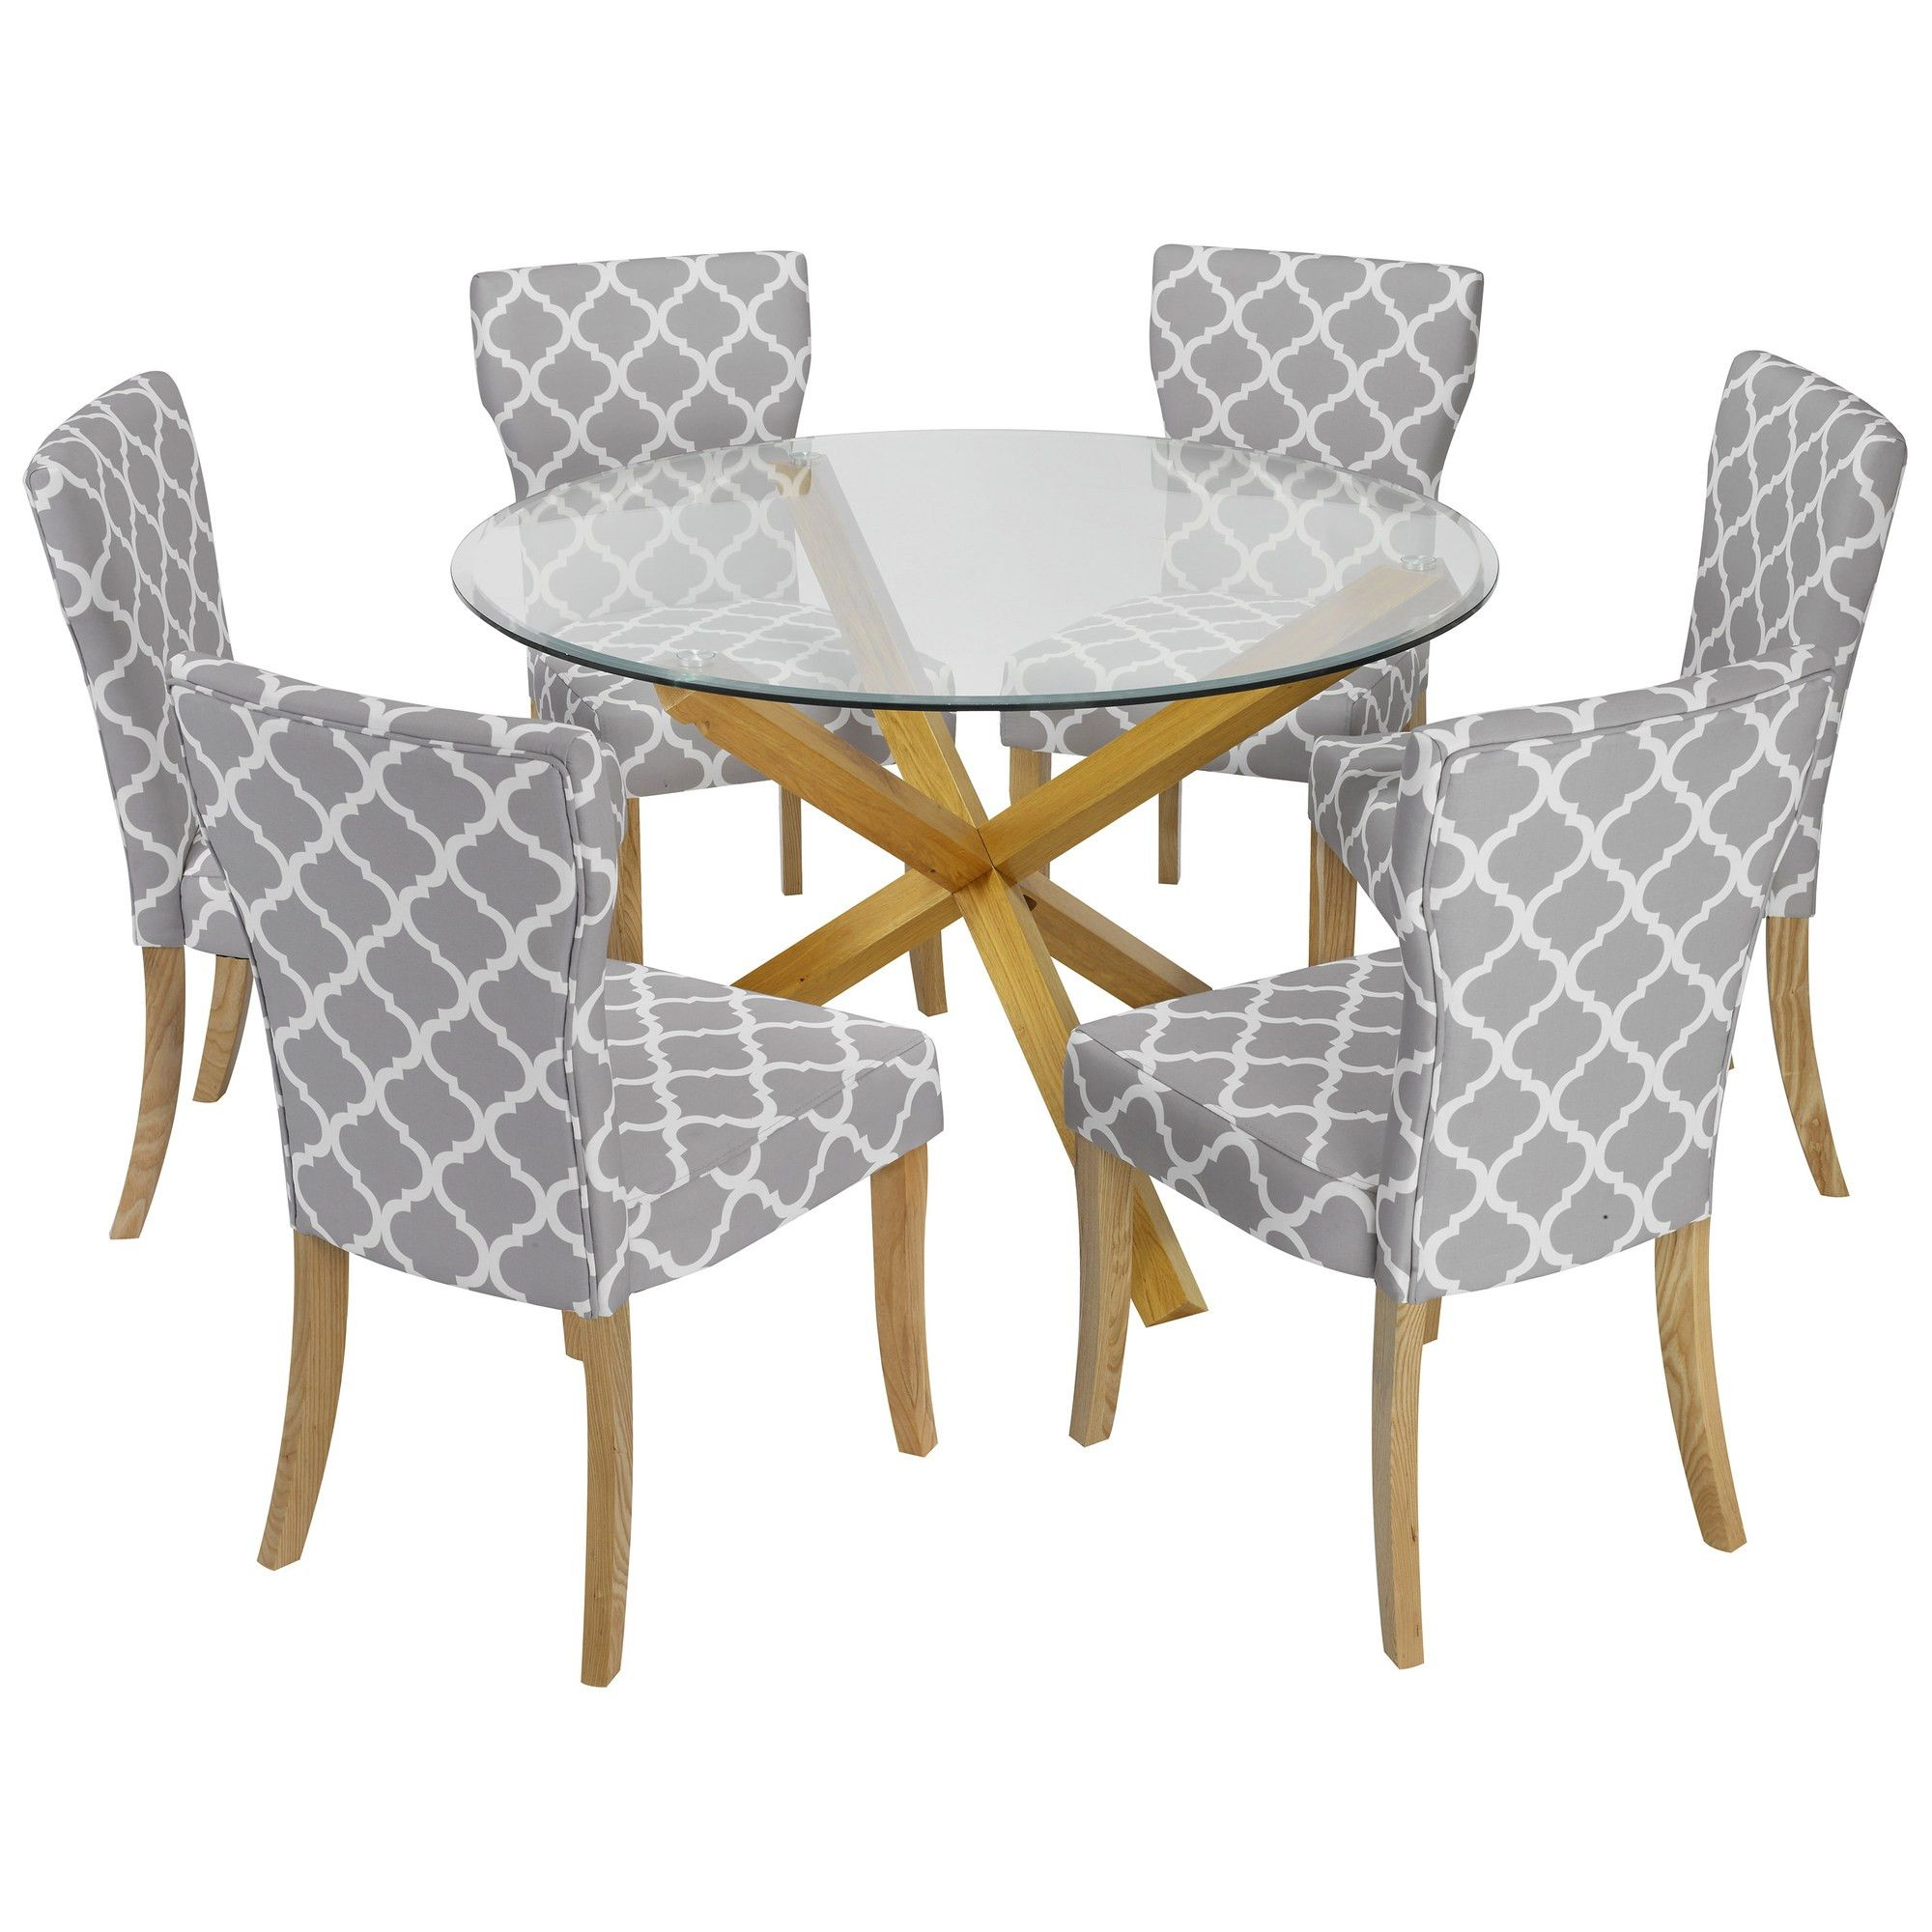 Solid Oak & Glass Round Dining Table and Chair Set with 6